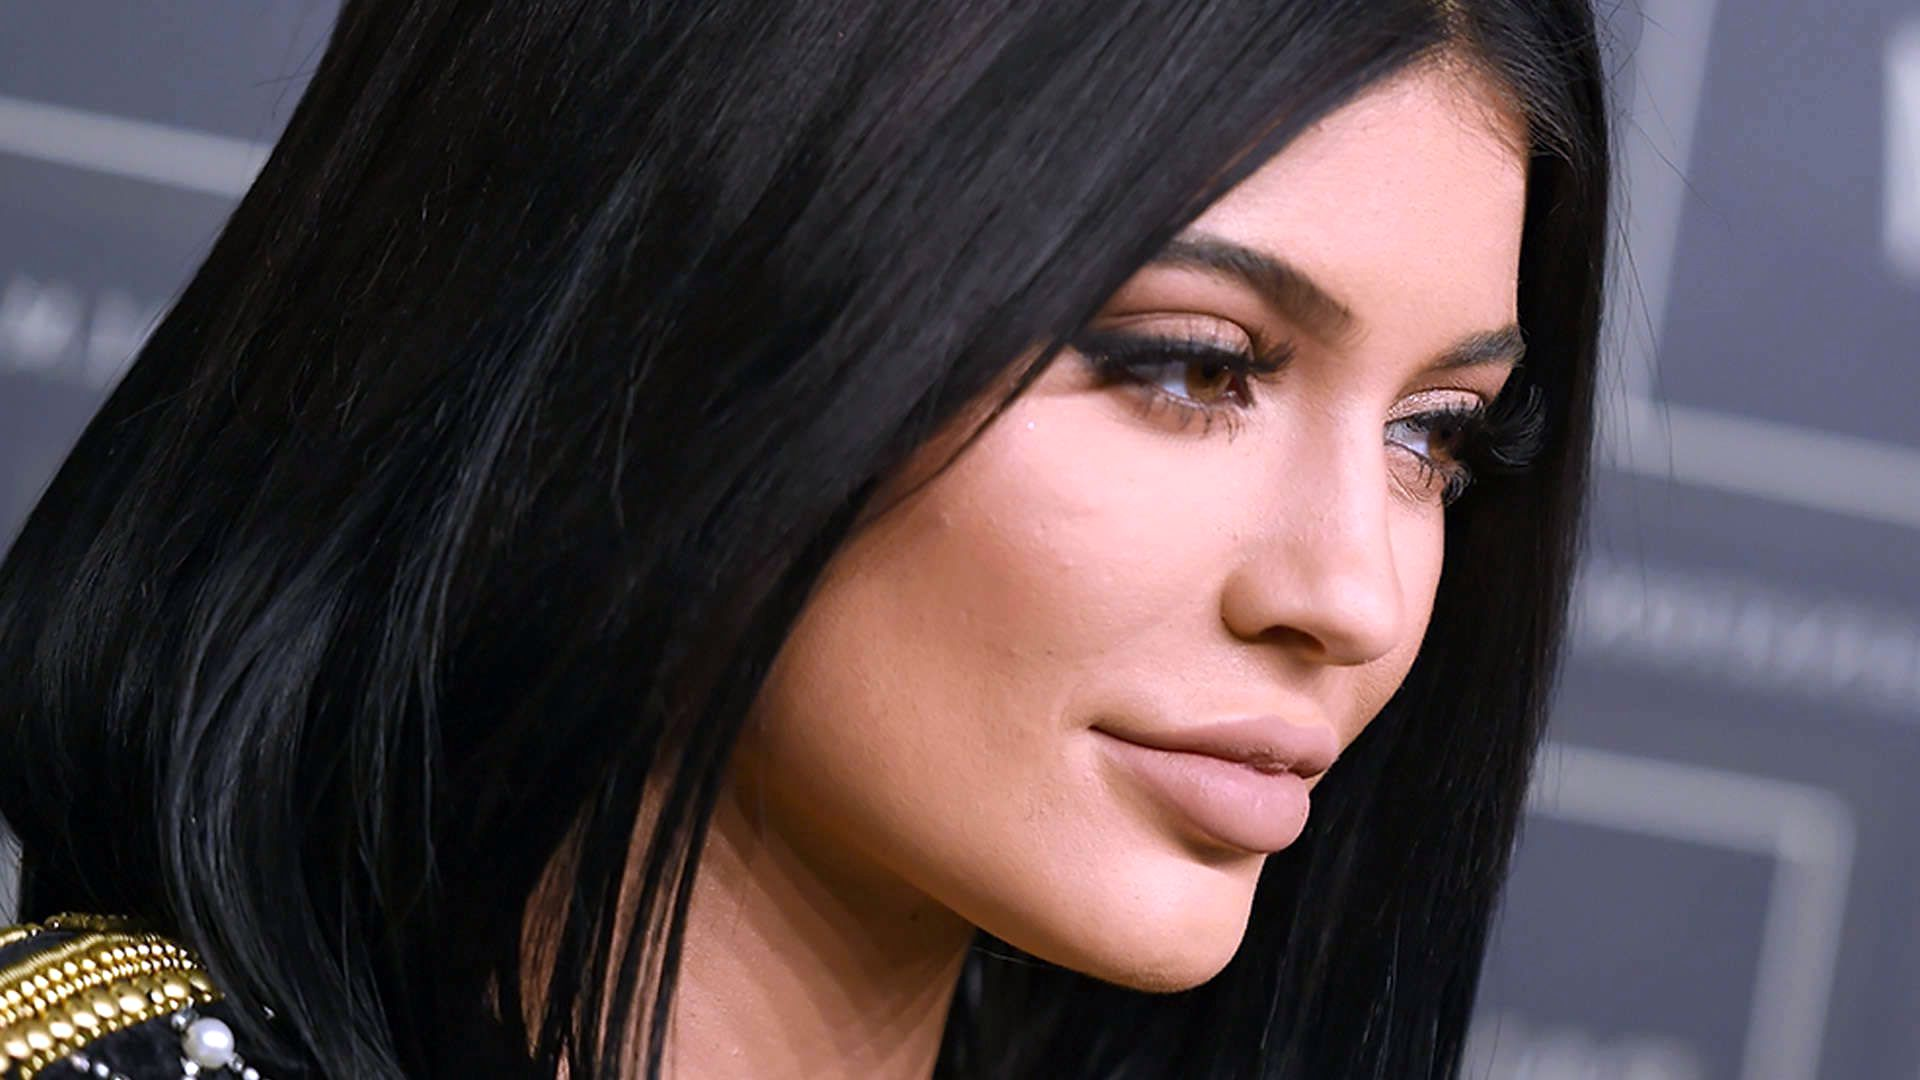 Kylie Jenner Hd Wallpaper Kylie Jenner Wallpapers 2016 349802